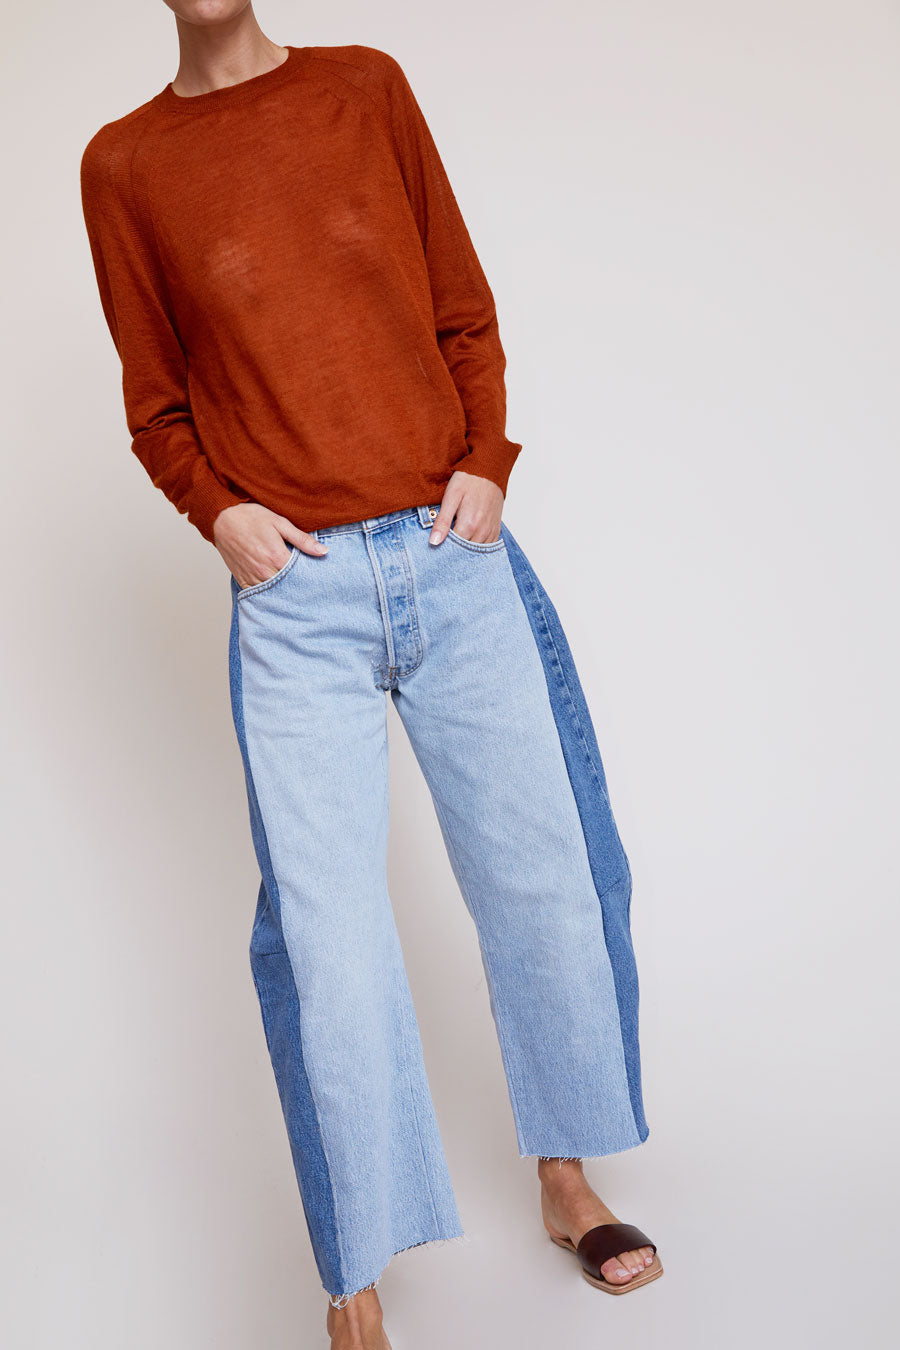 B Sides Aux Regular Lasso Jean in Isaac Wash